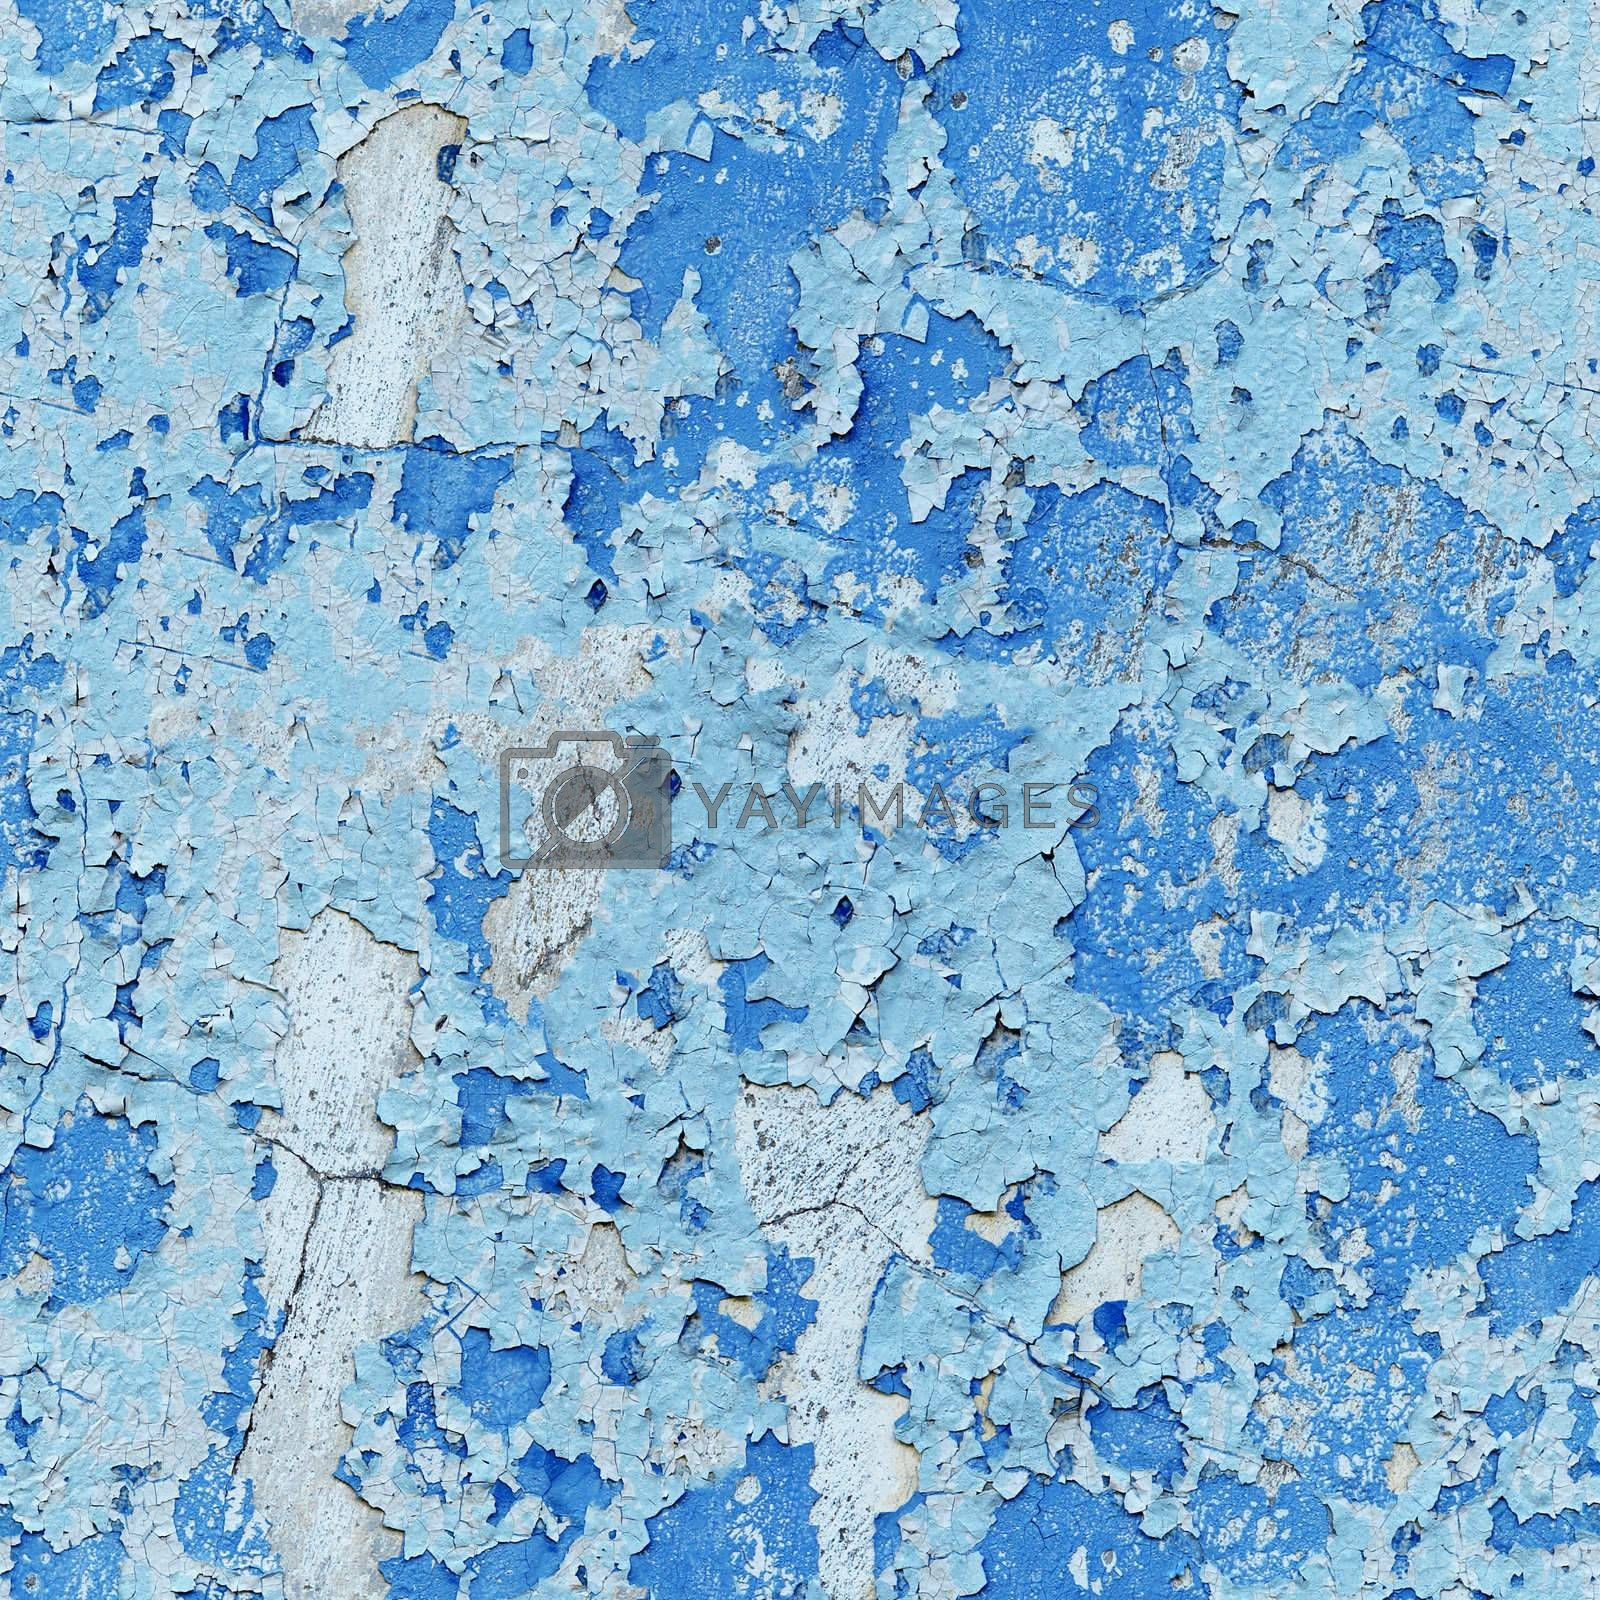 Royalty free image of Damaged paint on wall - seamless background by pzaxe